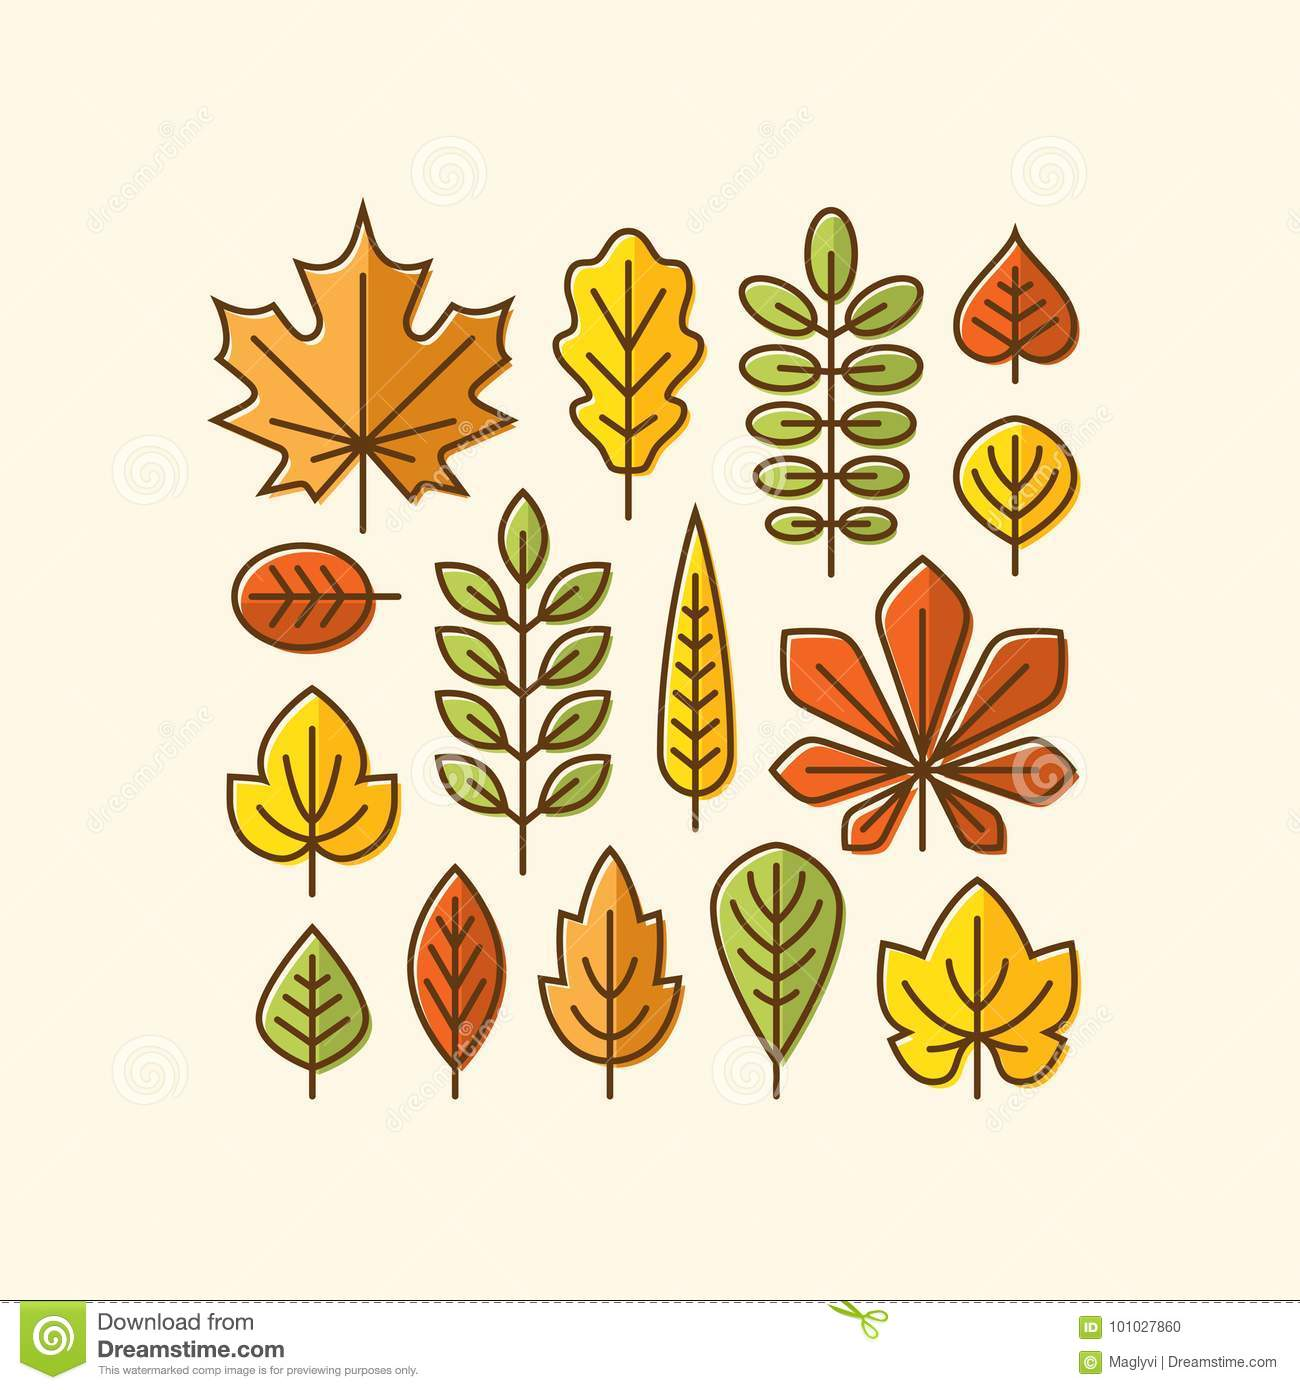 Colorful Autumn Leaves Icons Set Stock Vector Illustration Of Season Linear 101027860